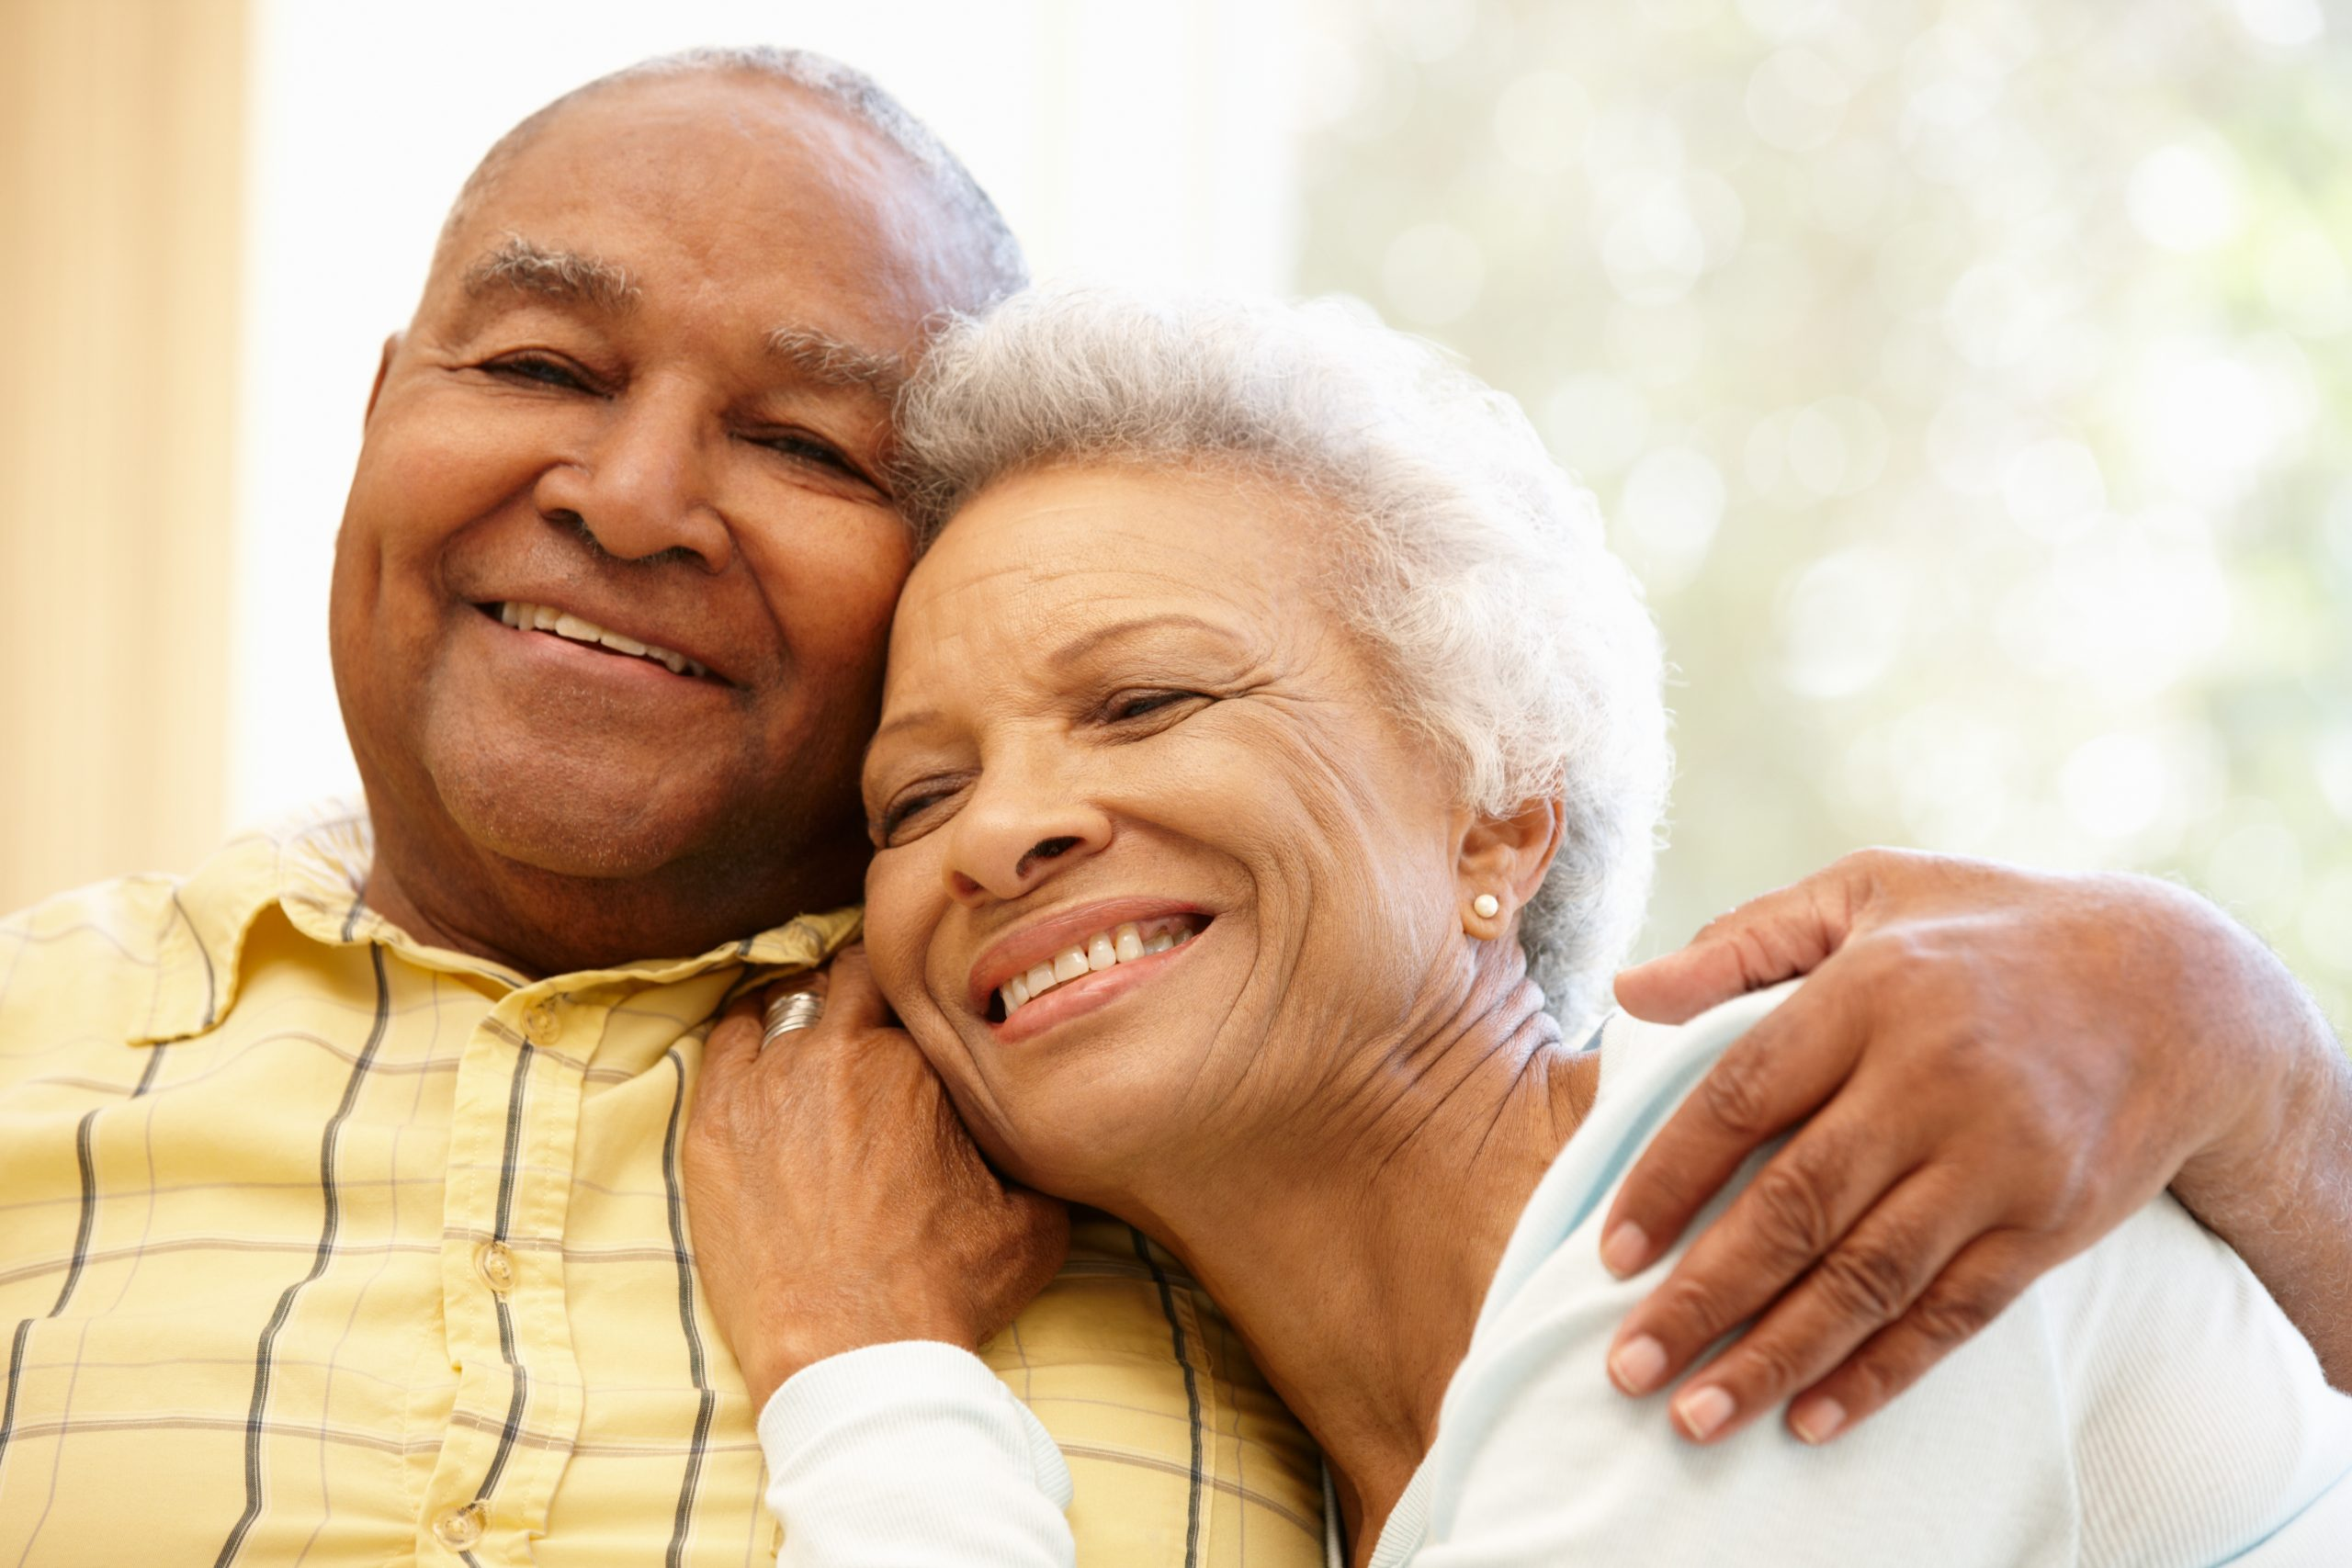 Life Settlements Are a Mainstream Financial Option